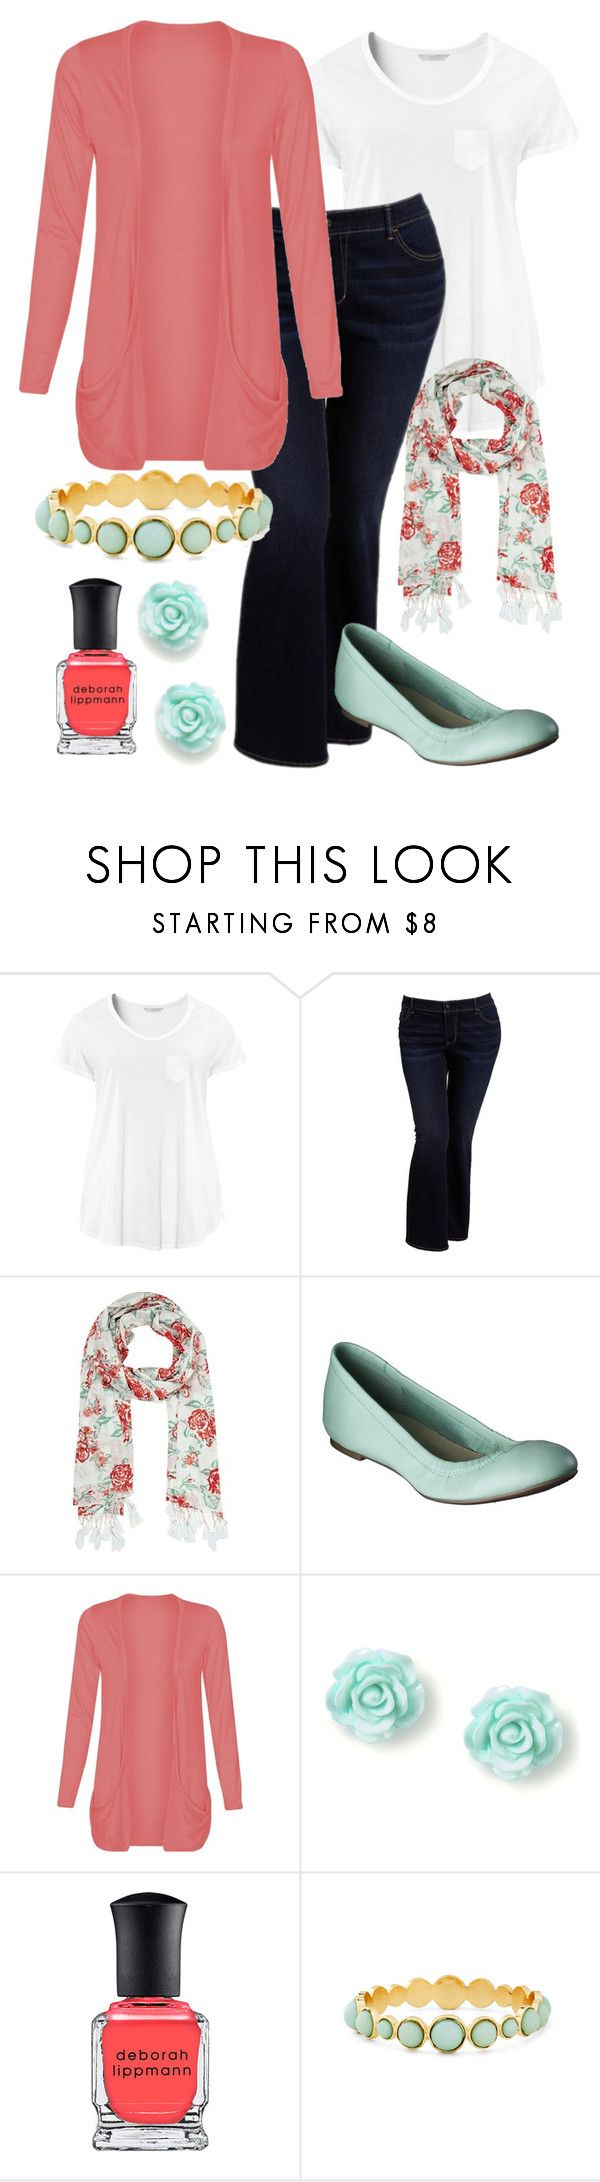 """Teacher Outfits on a Teacher's Budget 121"" by allij28 ❤ liked on Polyvore featuring H&M, Old Navy, River Island, Merona and Deborah Lippmann"